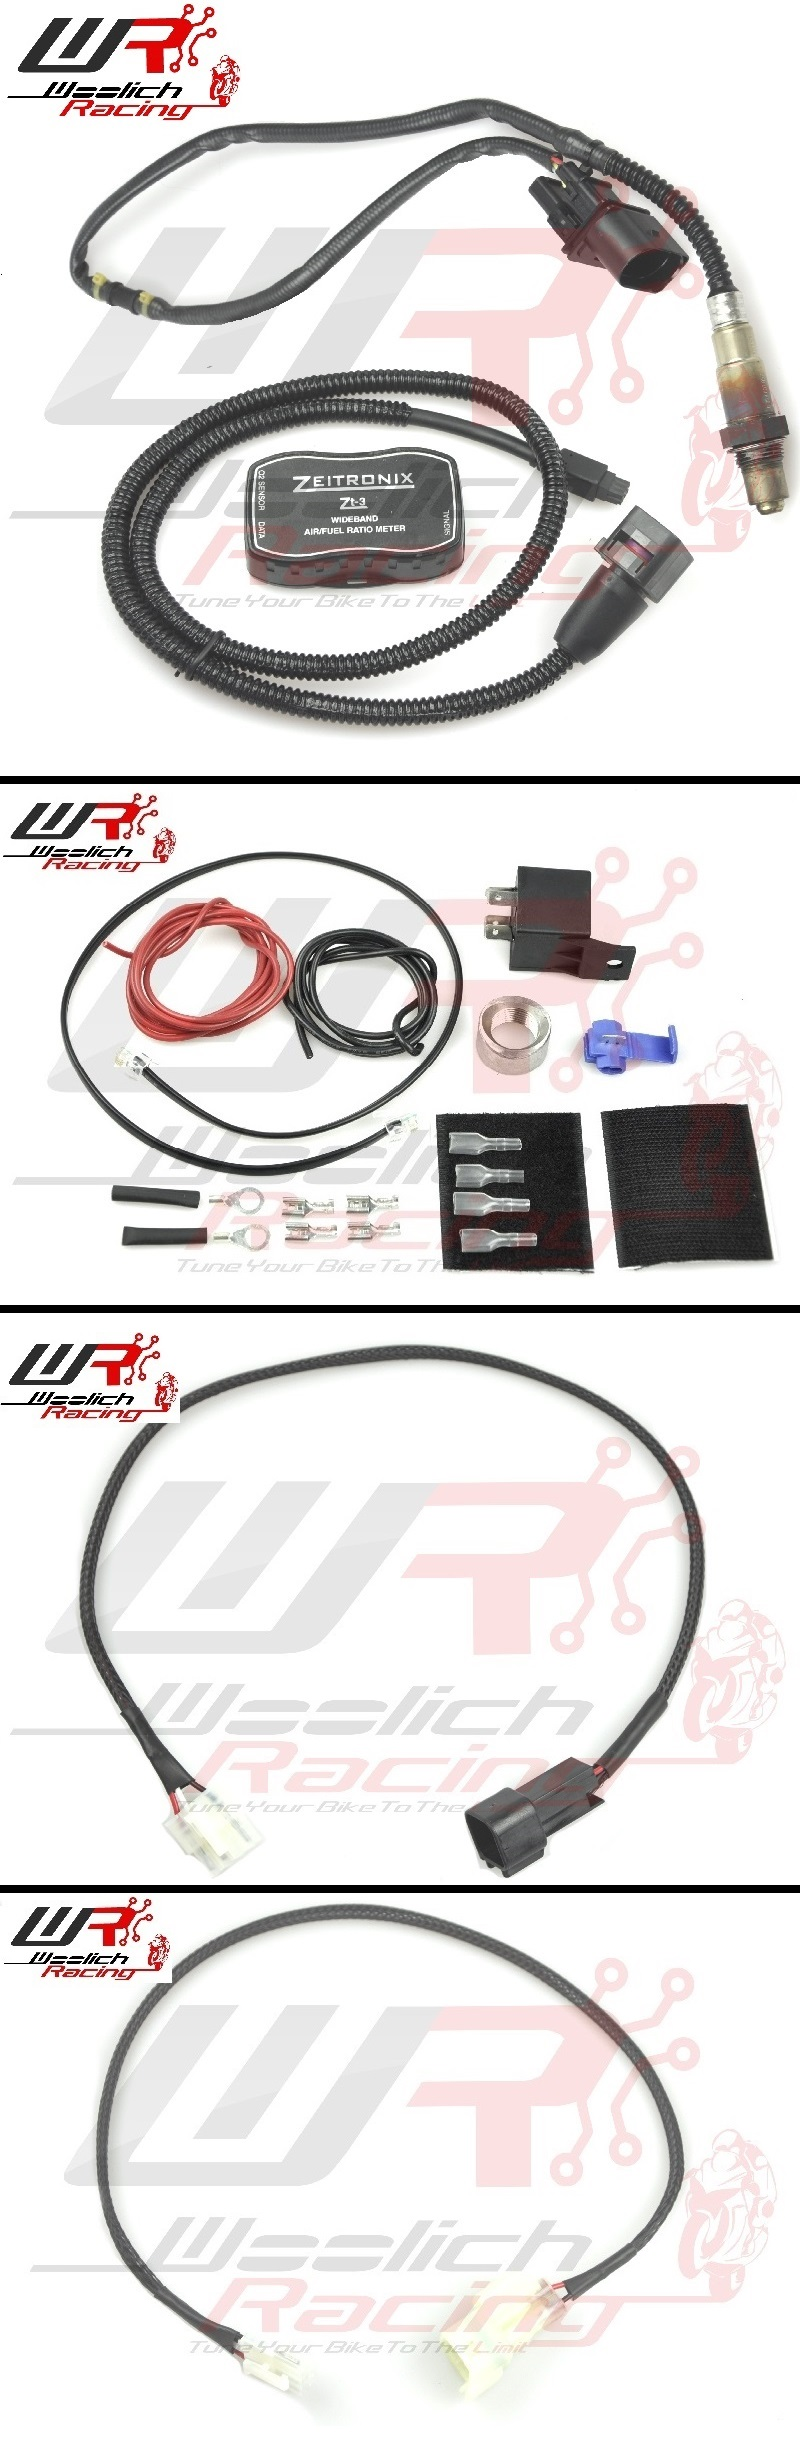 2012-2016 Kawasaki EX650/Ninja 650 Log Box (Denso) v3 + Zeitronix ZT-3 Wideband O2 Package